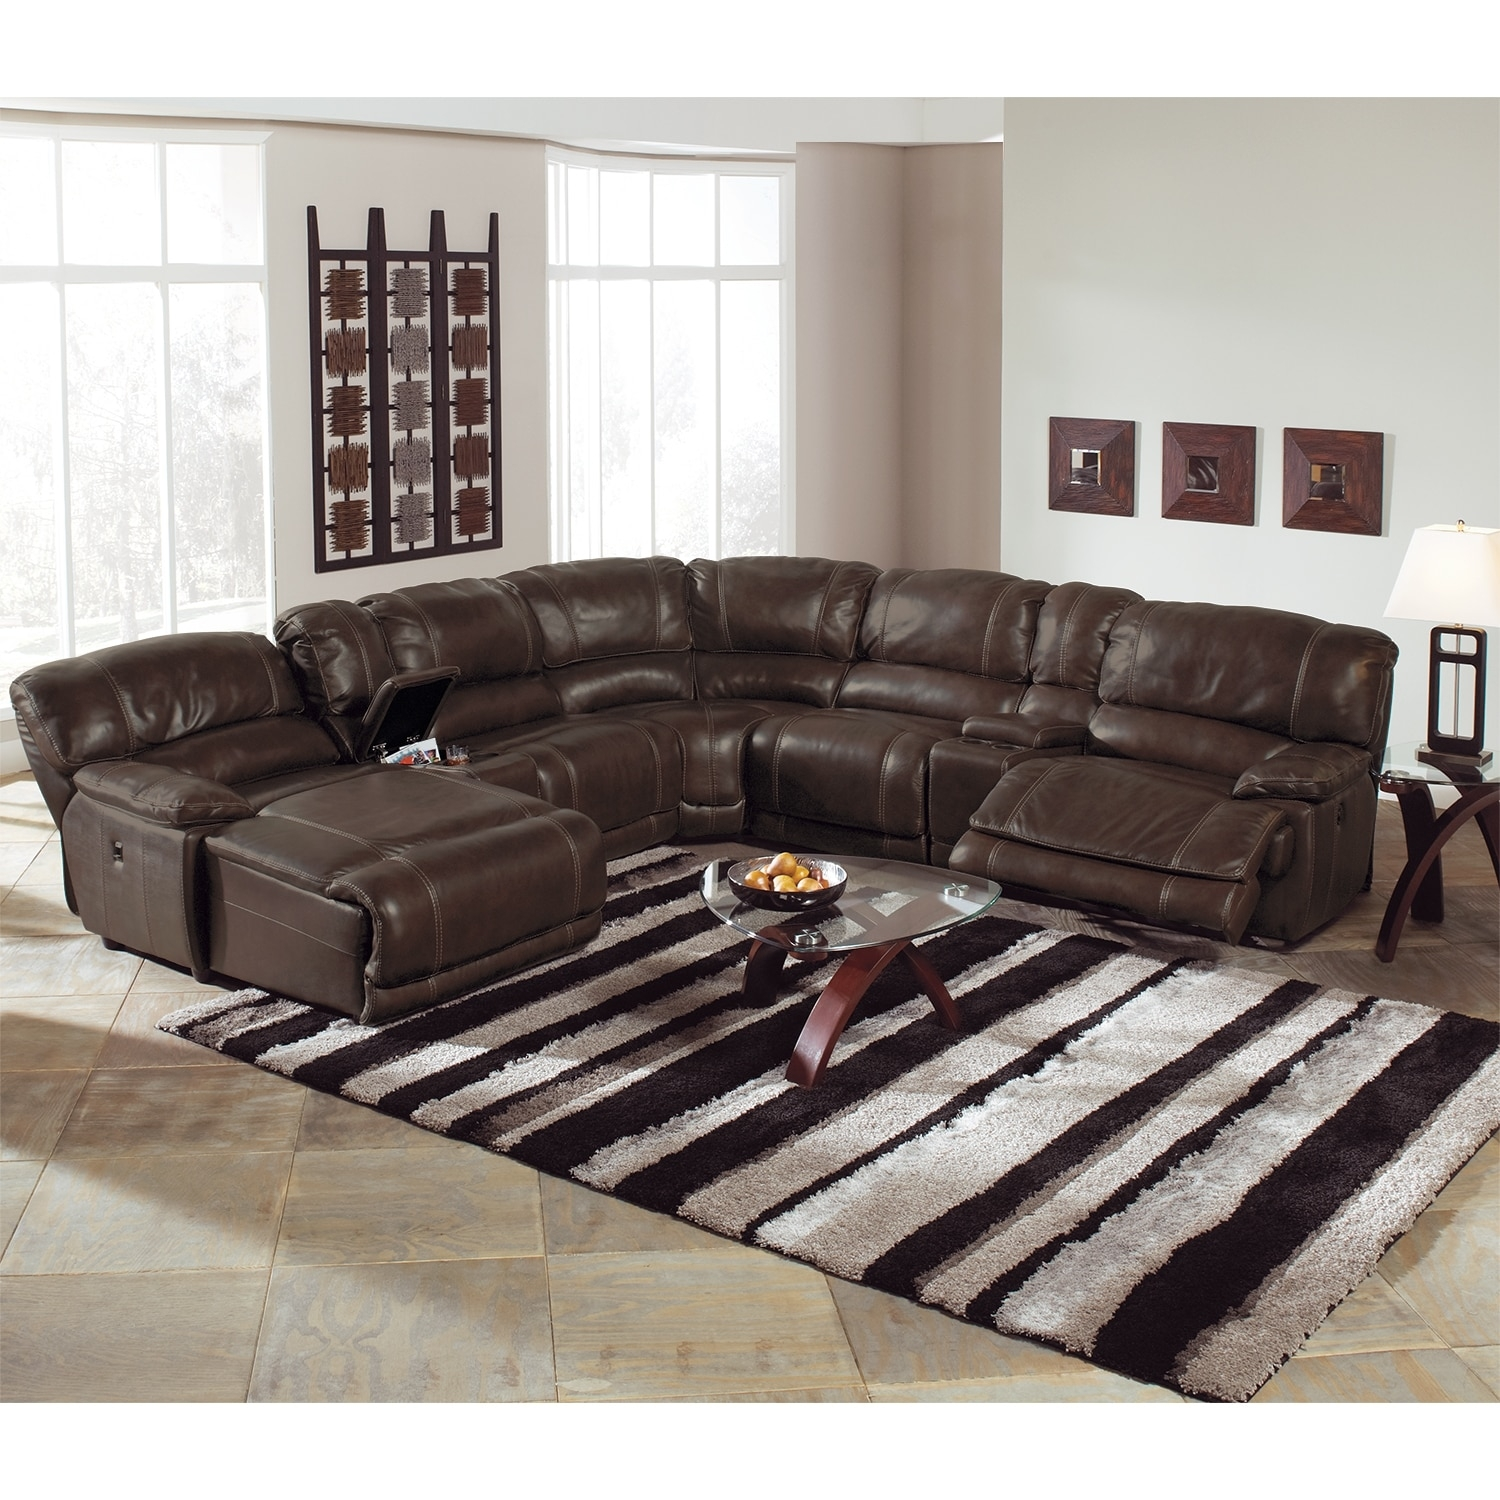 12 Best Collection Of 6 Piece Leather Sectional Sofa